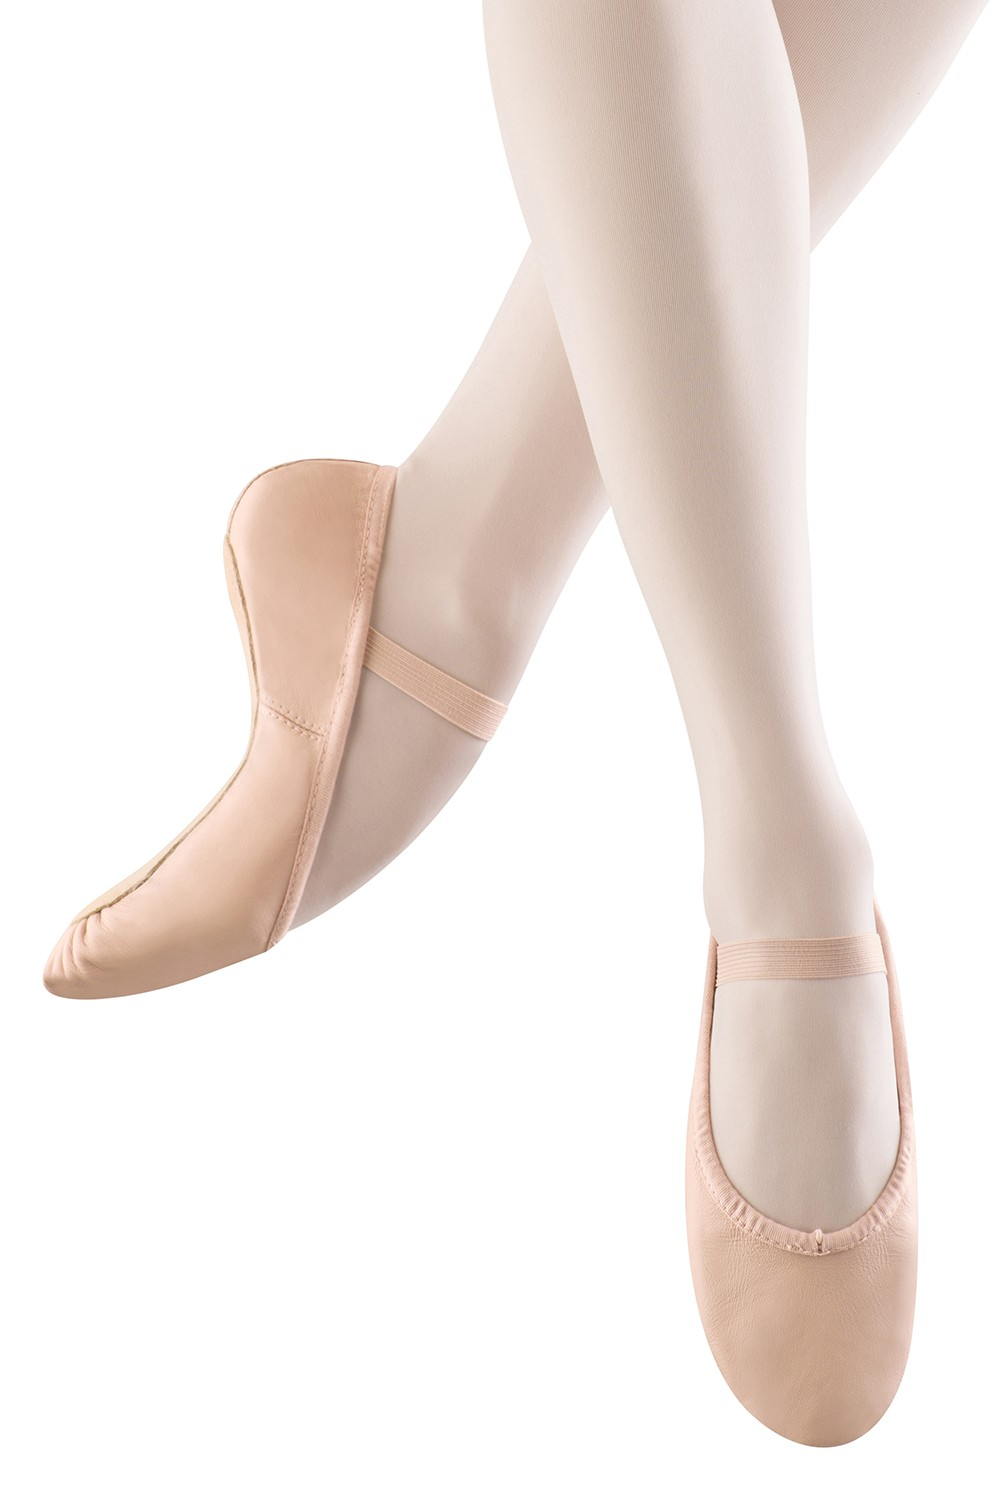 S0205dl Women's Ballet Shoes